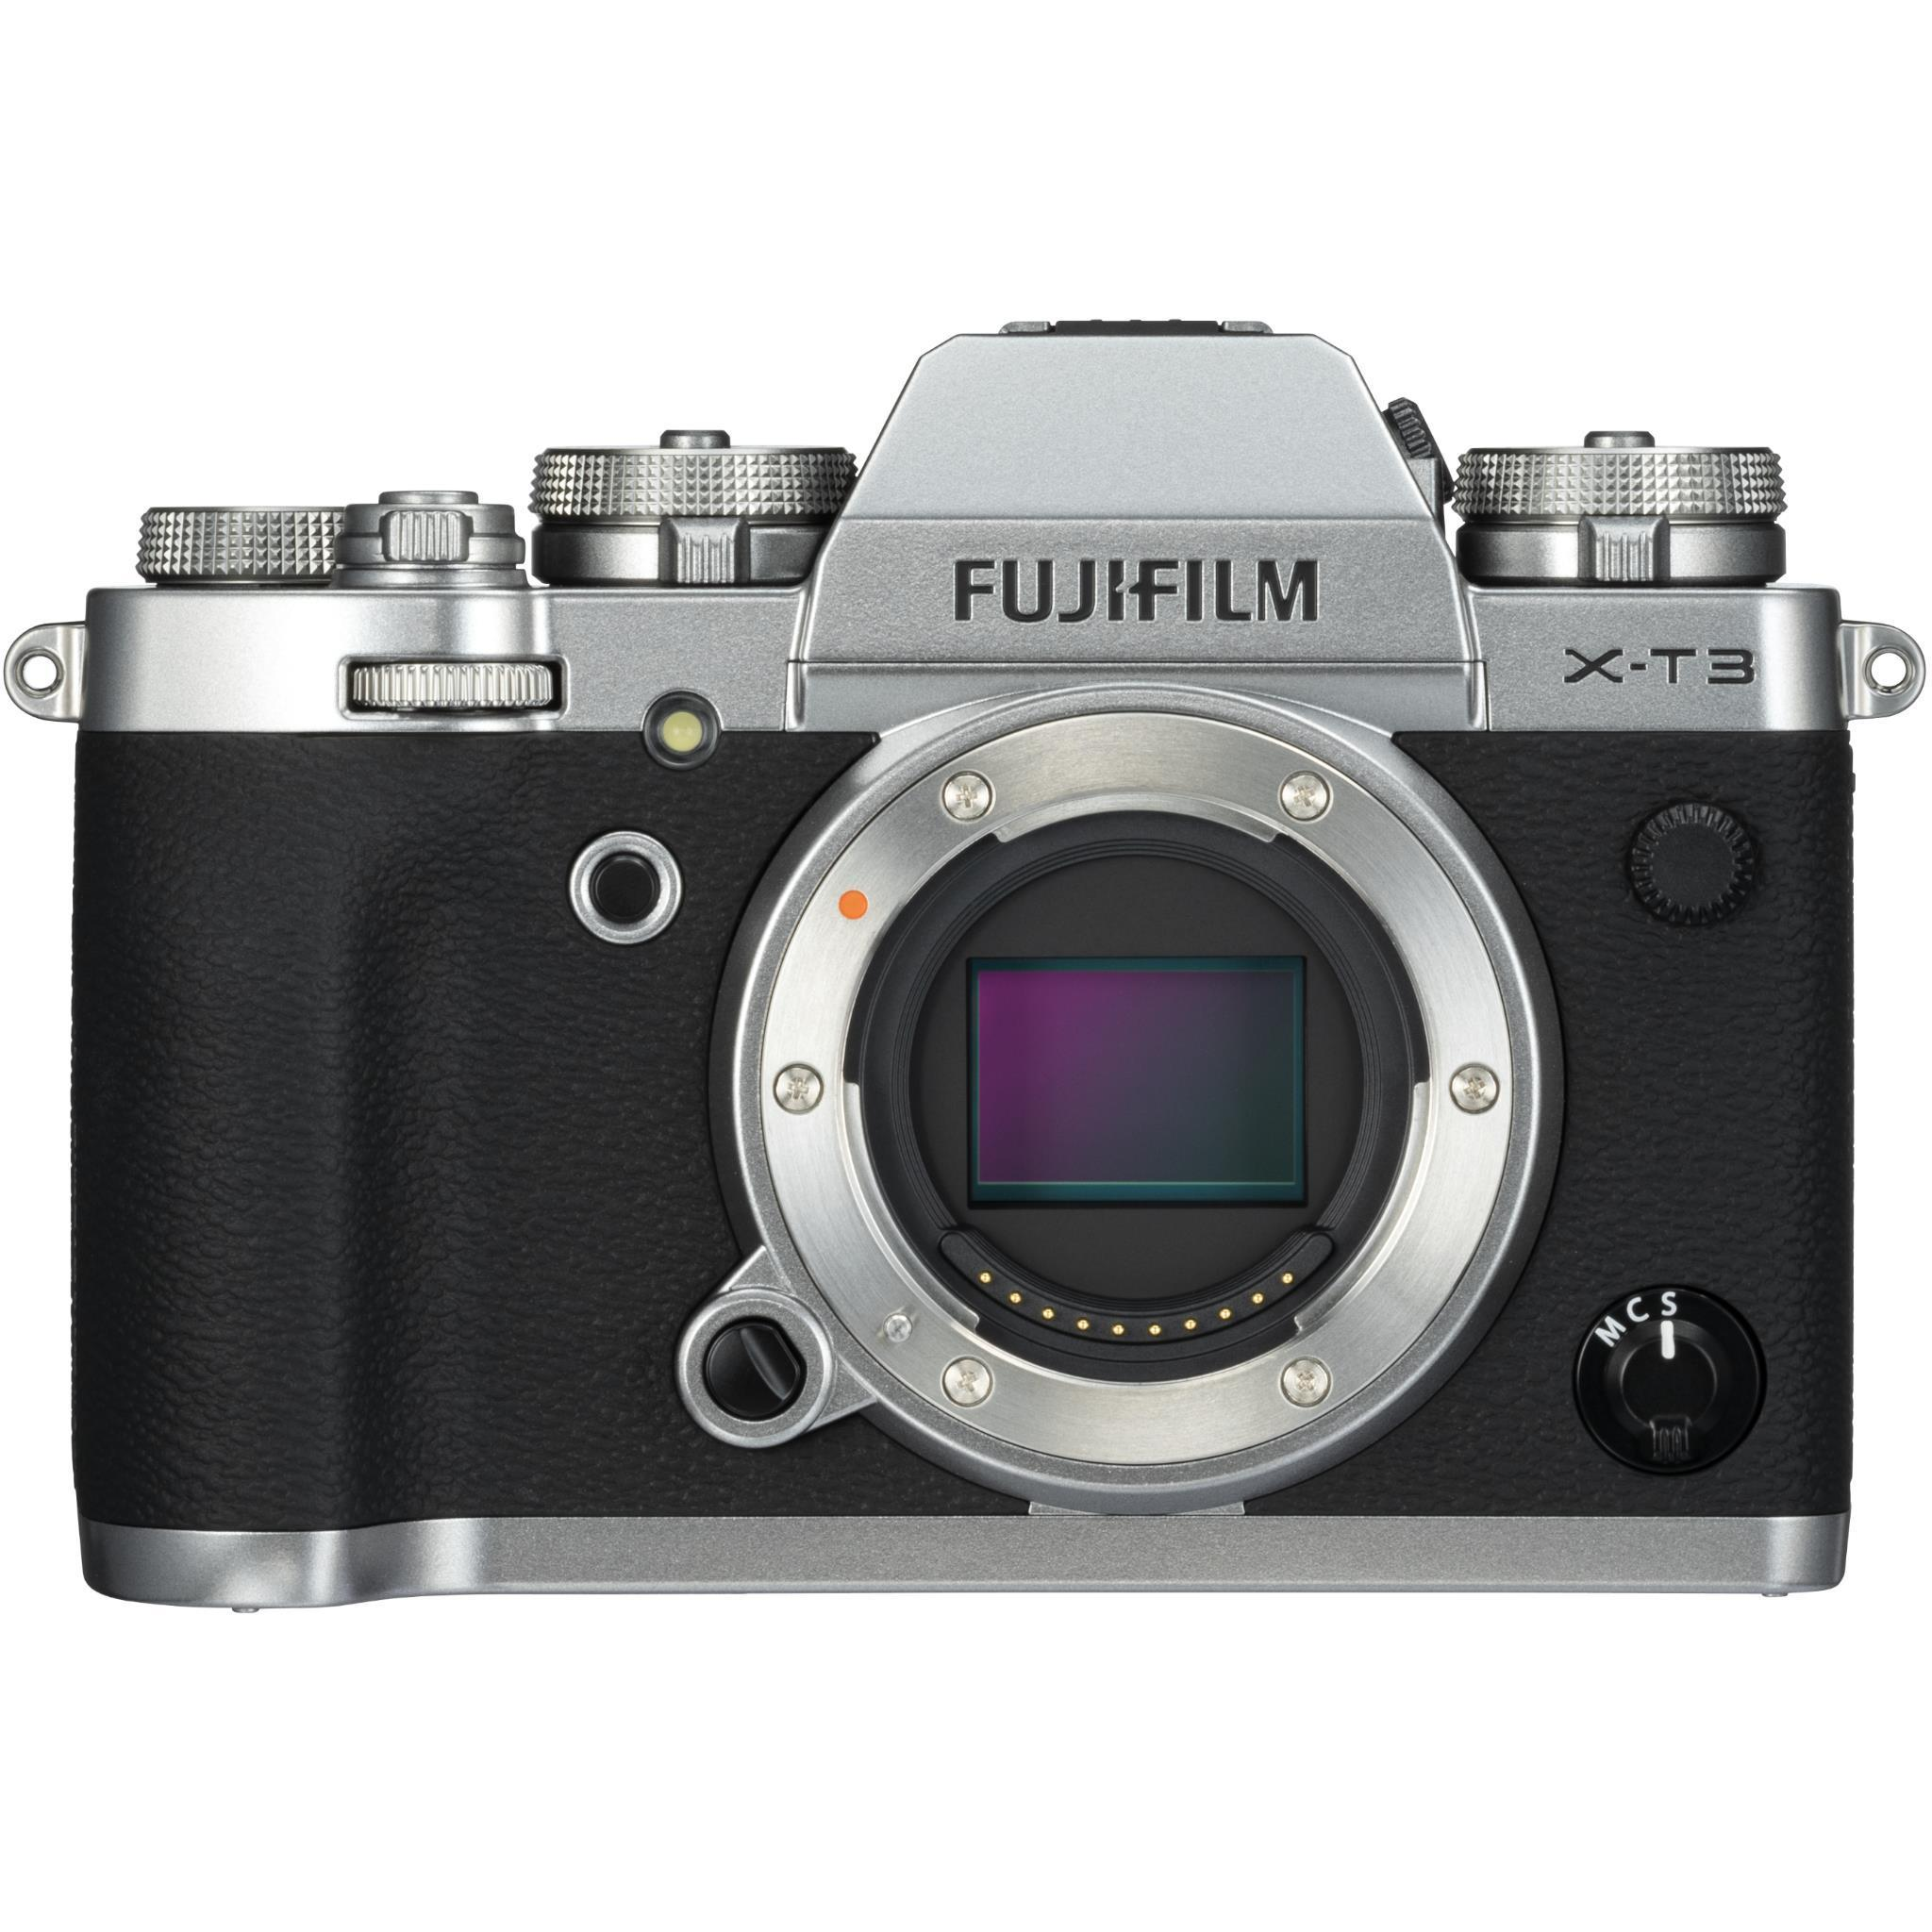 Fujifilm X-T3 Mirrorless Camera [Body Only] (Silver)